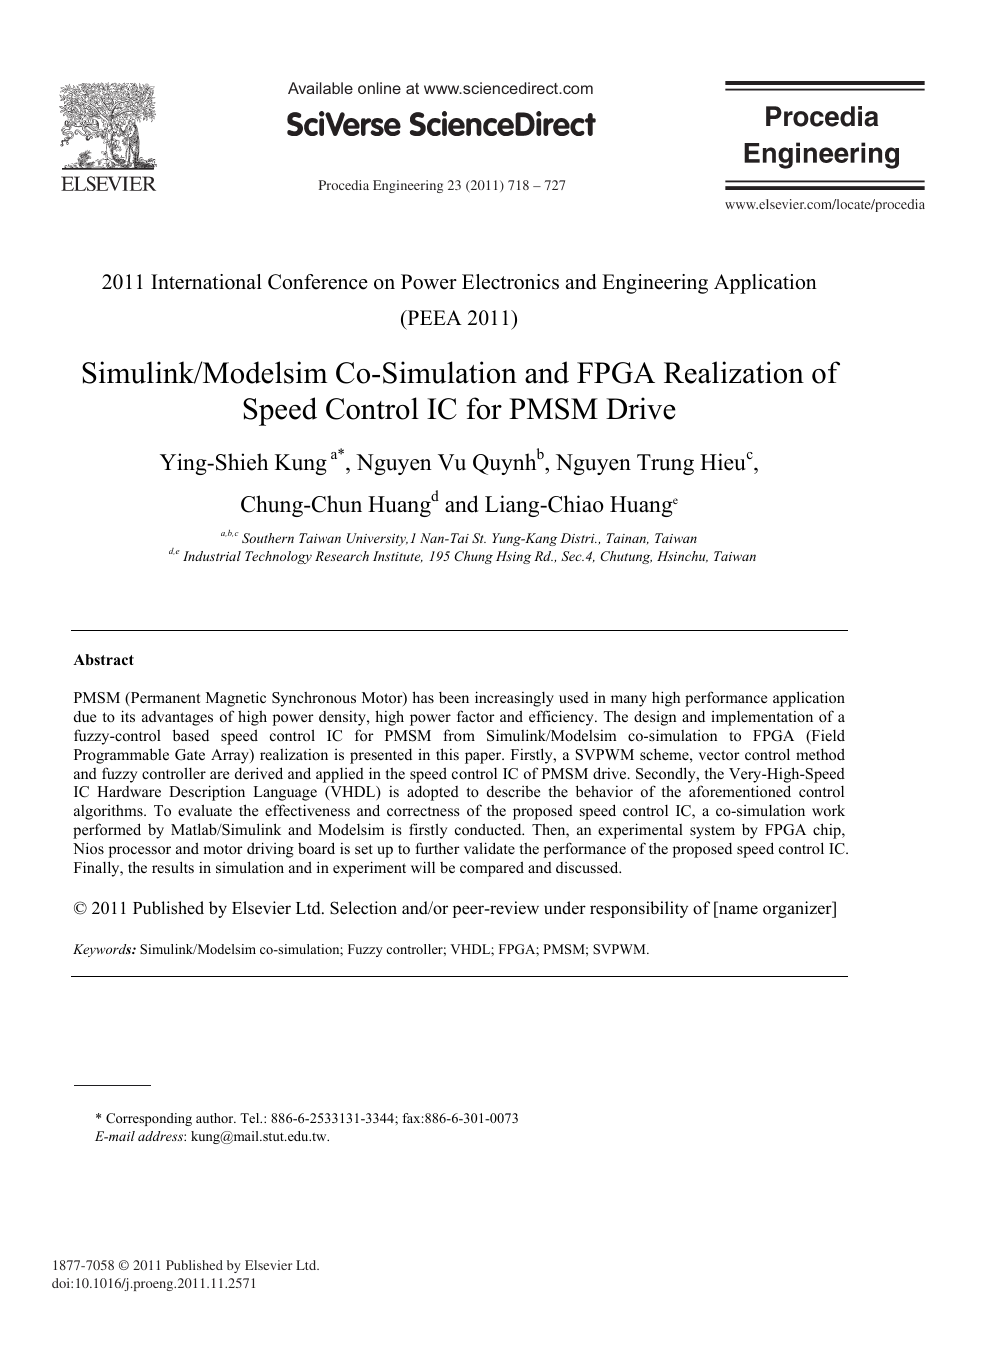 Simulink/Modelsim Co-Simulation and FPGA Realization of Speed